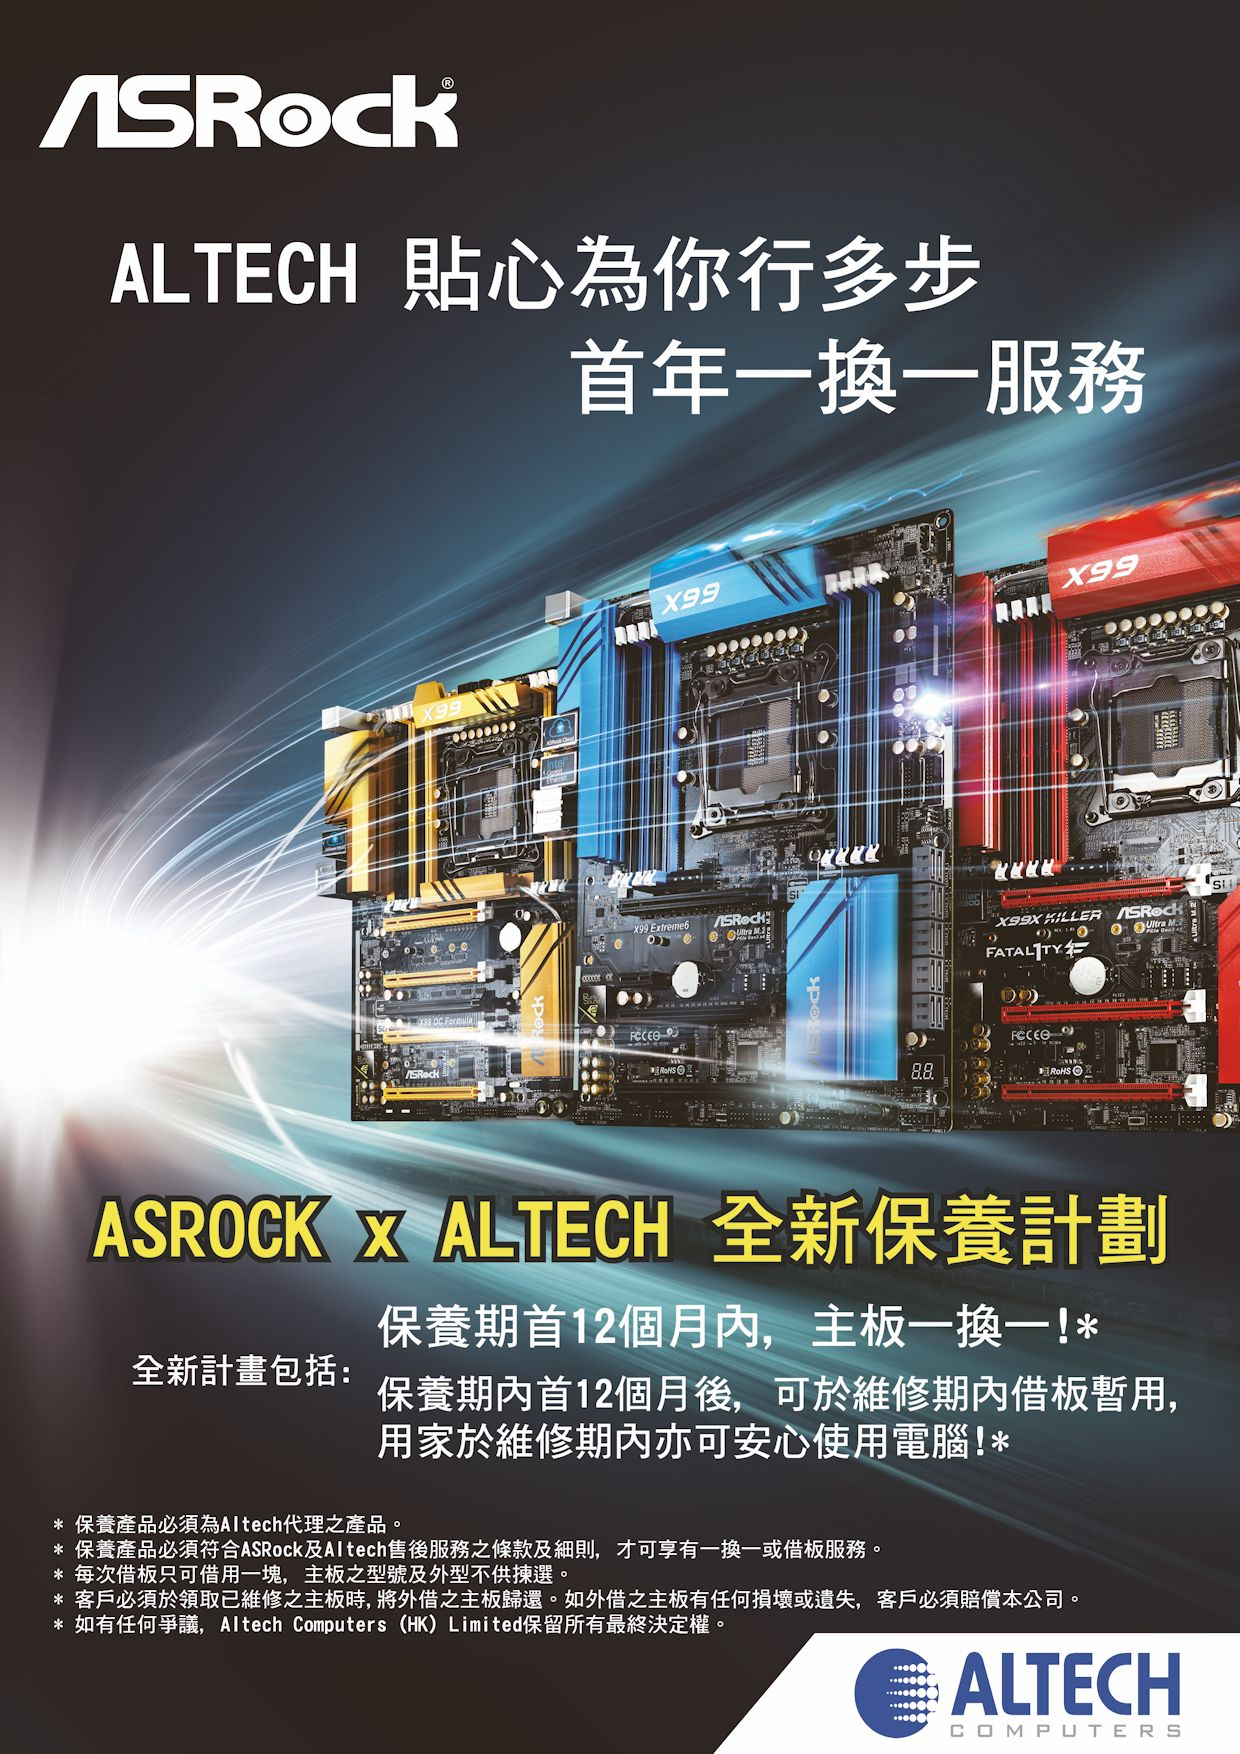 Altech Warranty